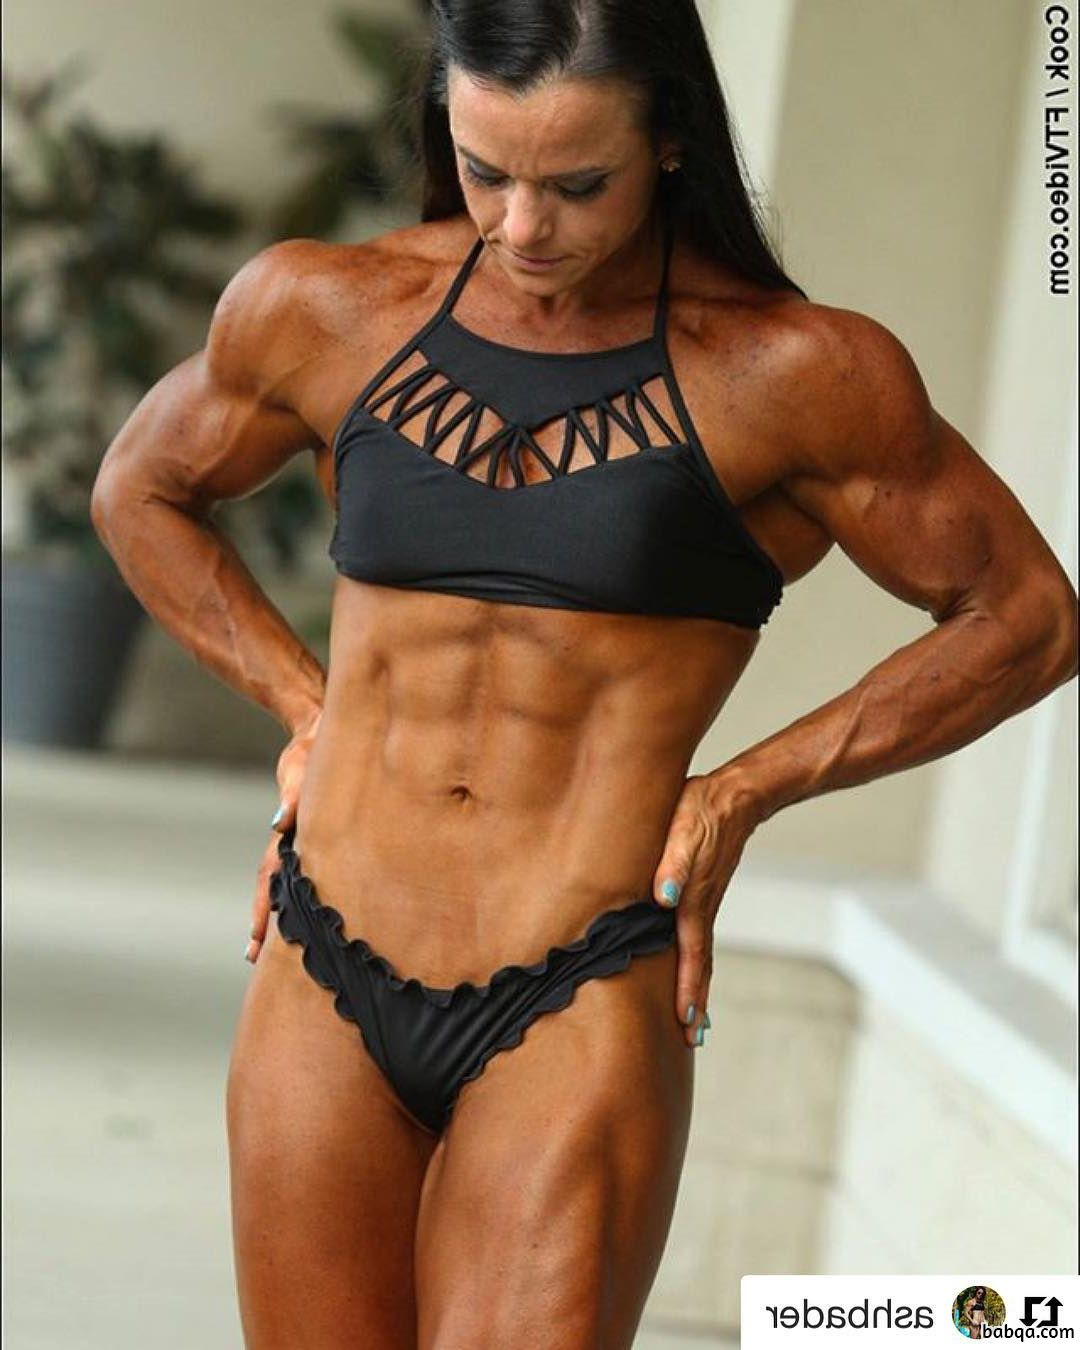 spicy chick with strong body and muscle biceps picture from facebook